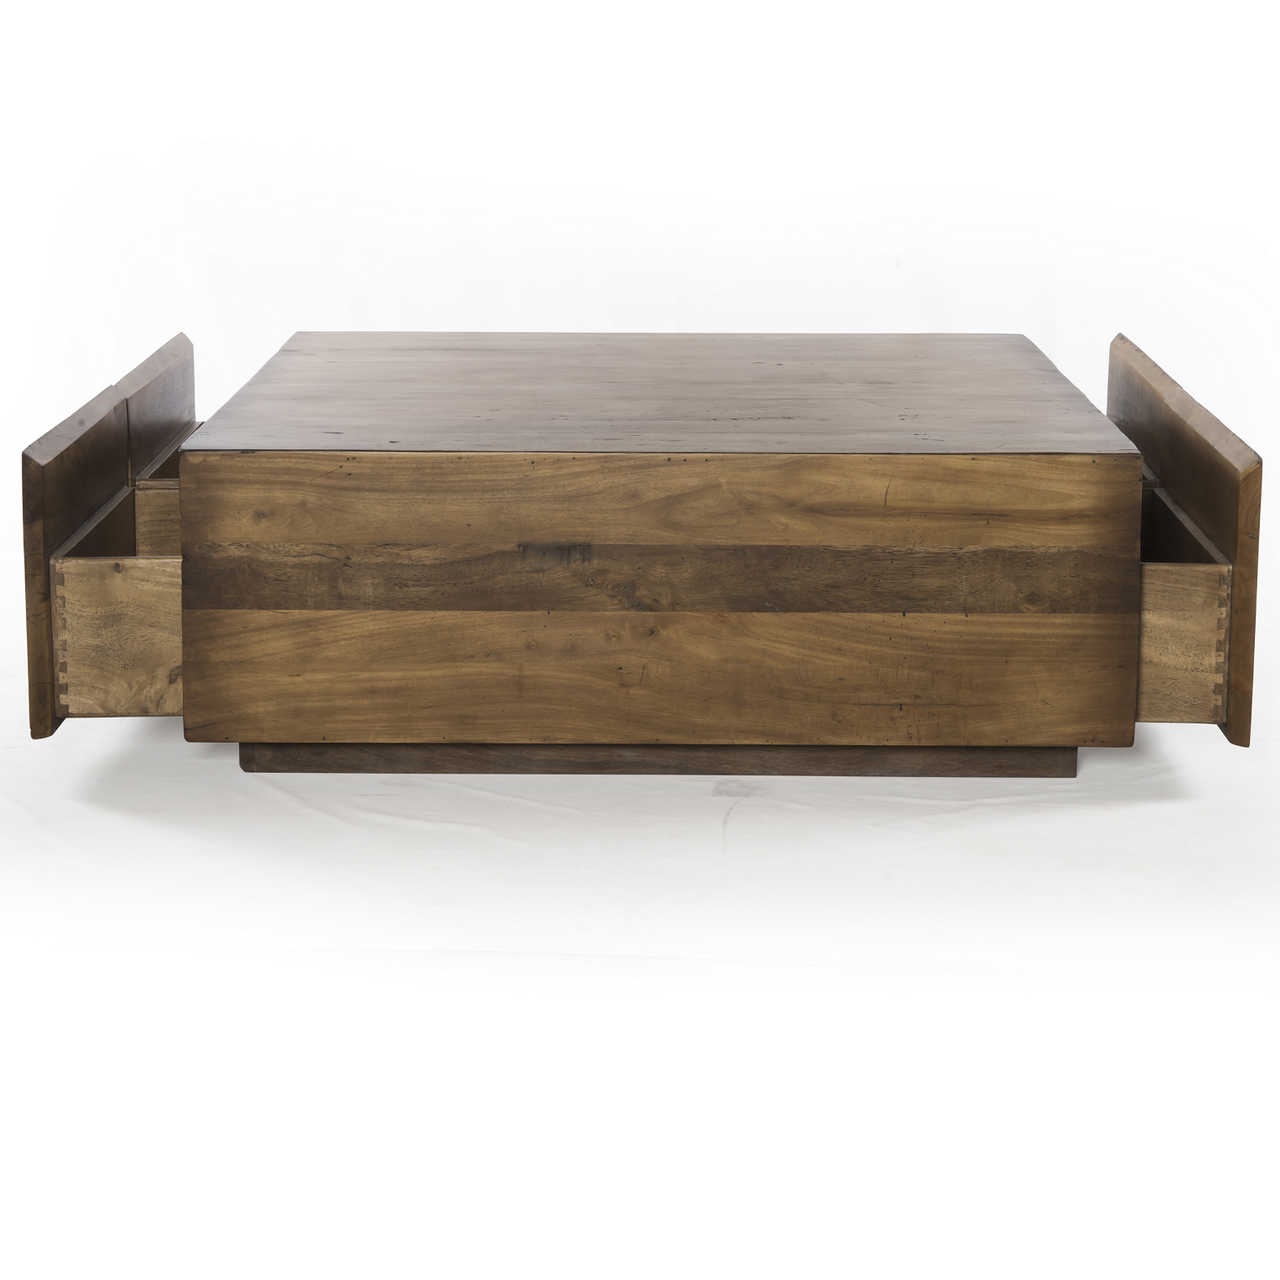 Duncan Reclaimed Wood Square Storage Coffee Table In 2021 Wood Coffee Table Storage Made Coffee Table Coffee Table Wood [ 1280 x 1280 Pixel ]